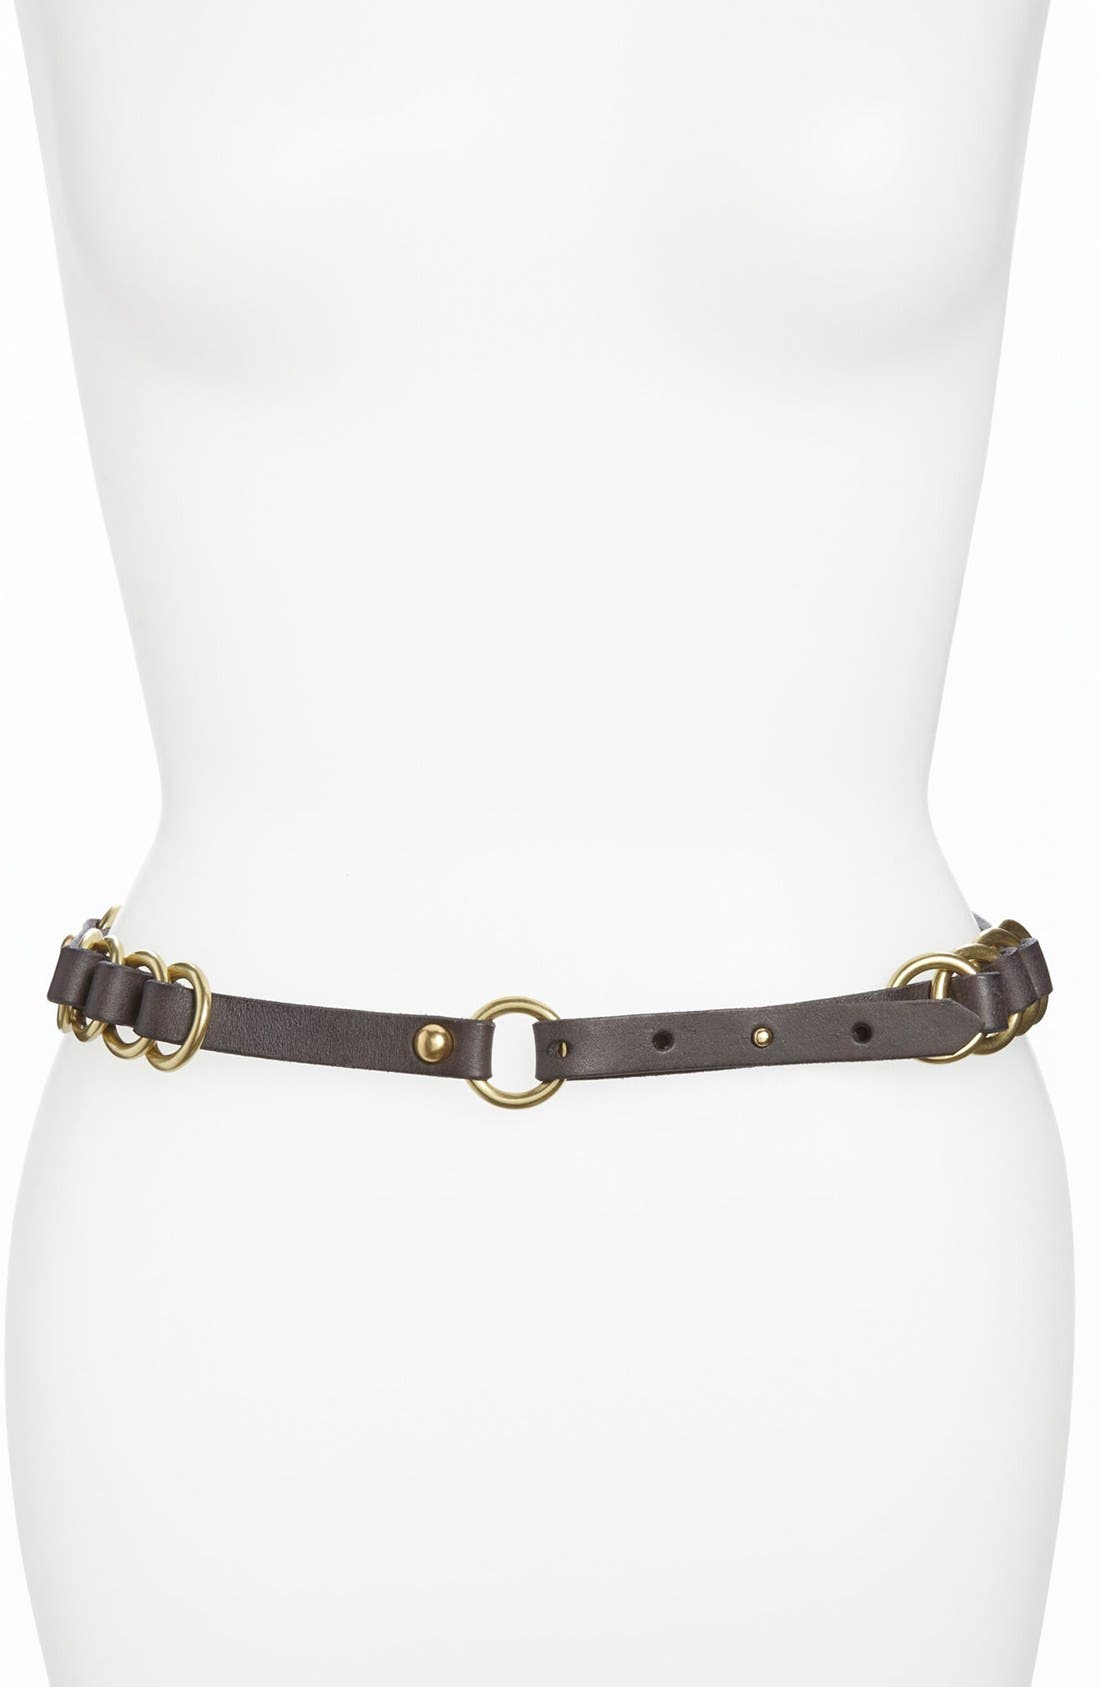 Alternate Image 1 Selected - Tarnish Leather Belt